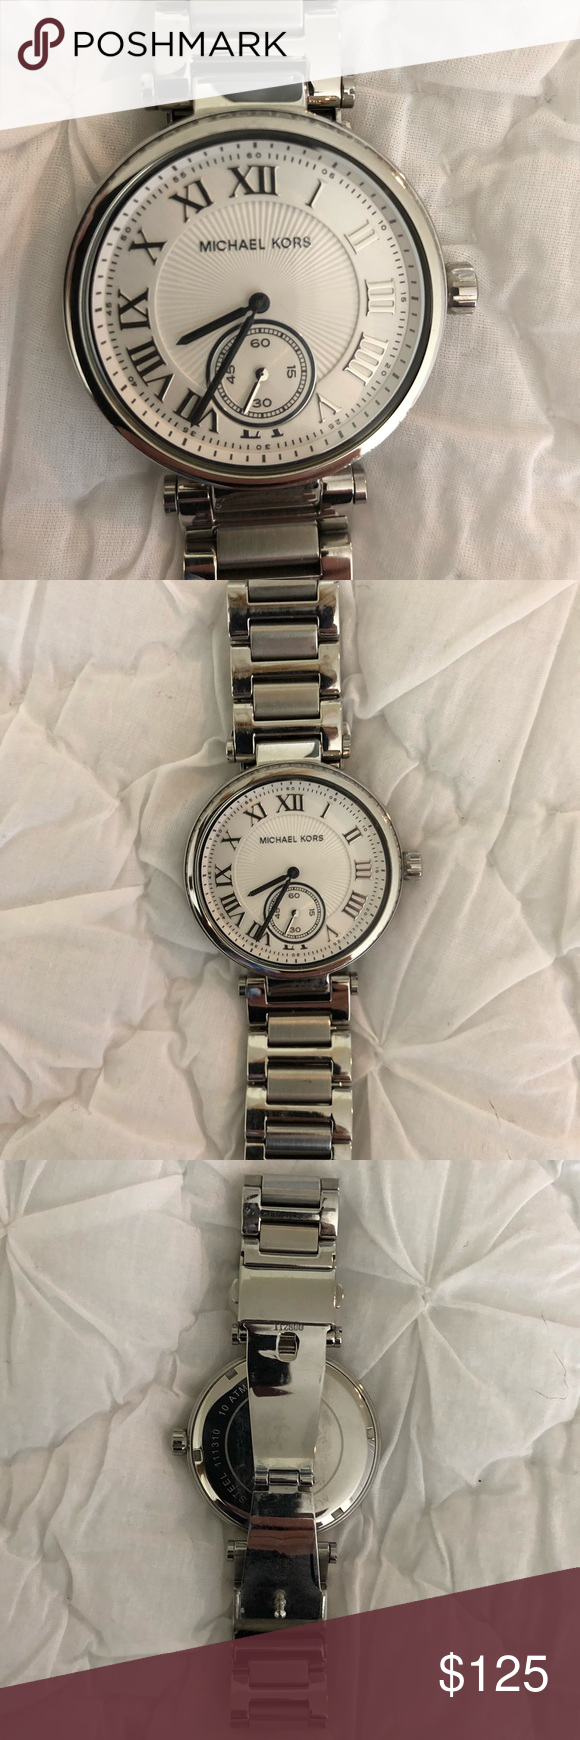 0a683347c29e Michael Kors MK5866 Watch Michael Kors - Skylar MK 5866 watch. Silver